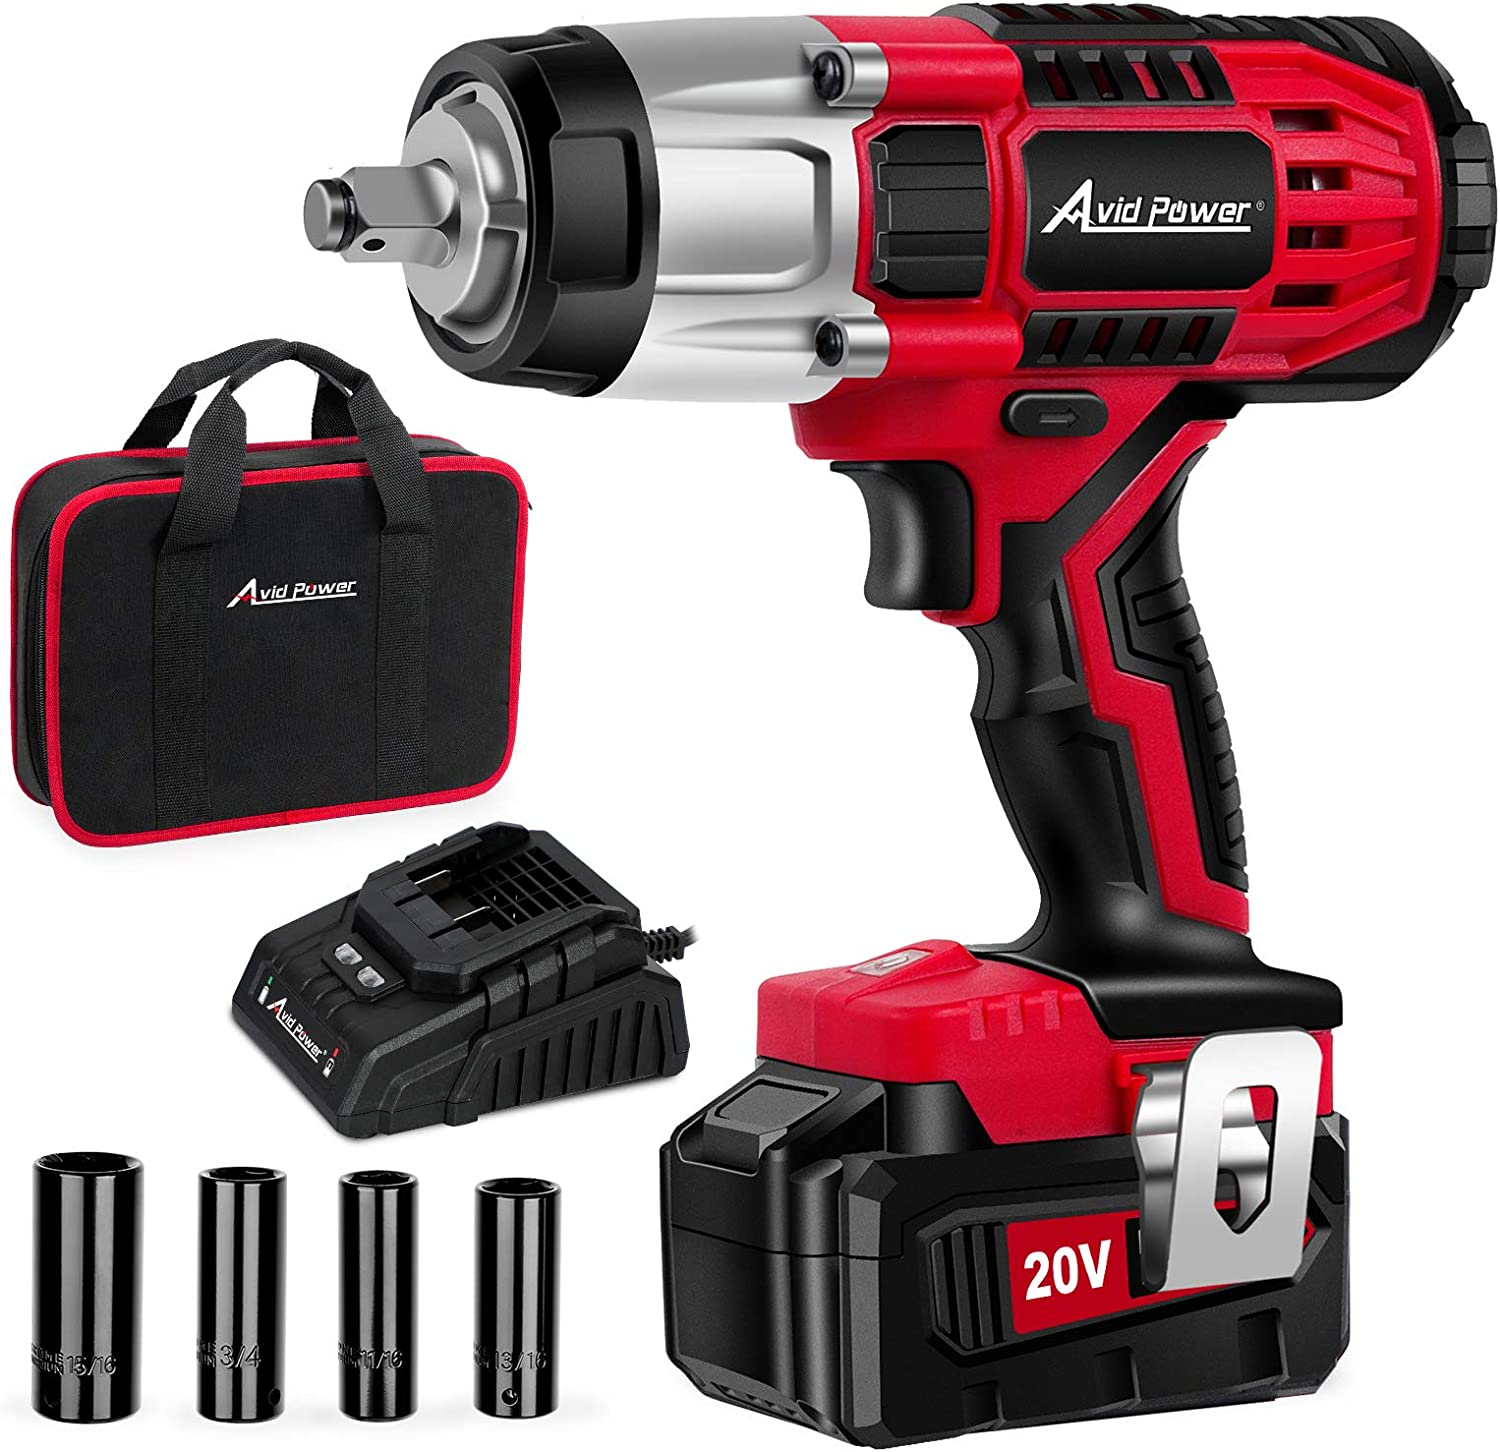 AVID POWER JSS1 20V MAX Cordless Impact Wrench for Tires and Automotive Repair